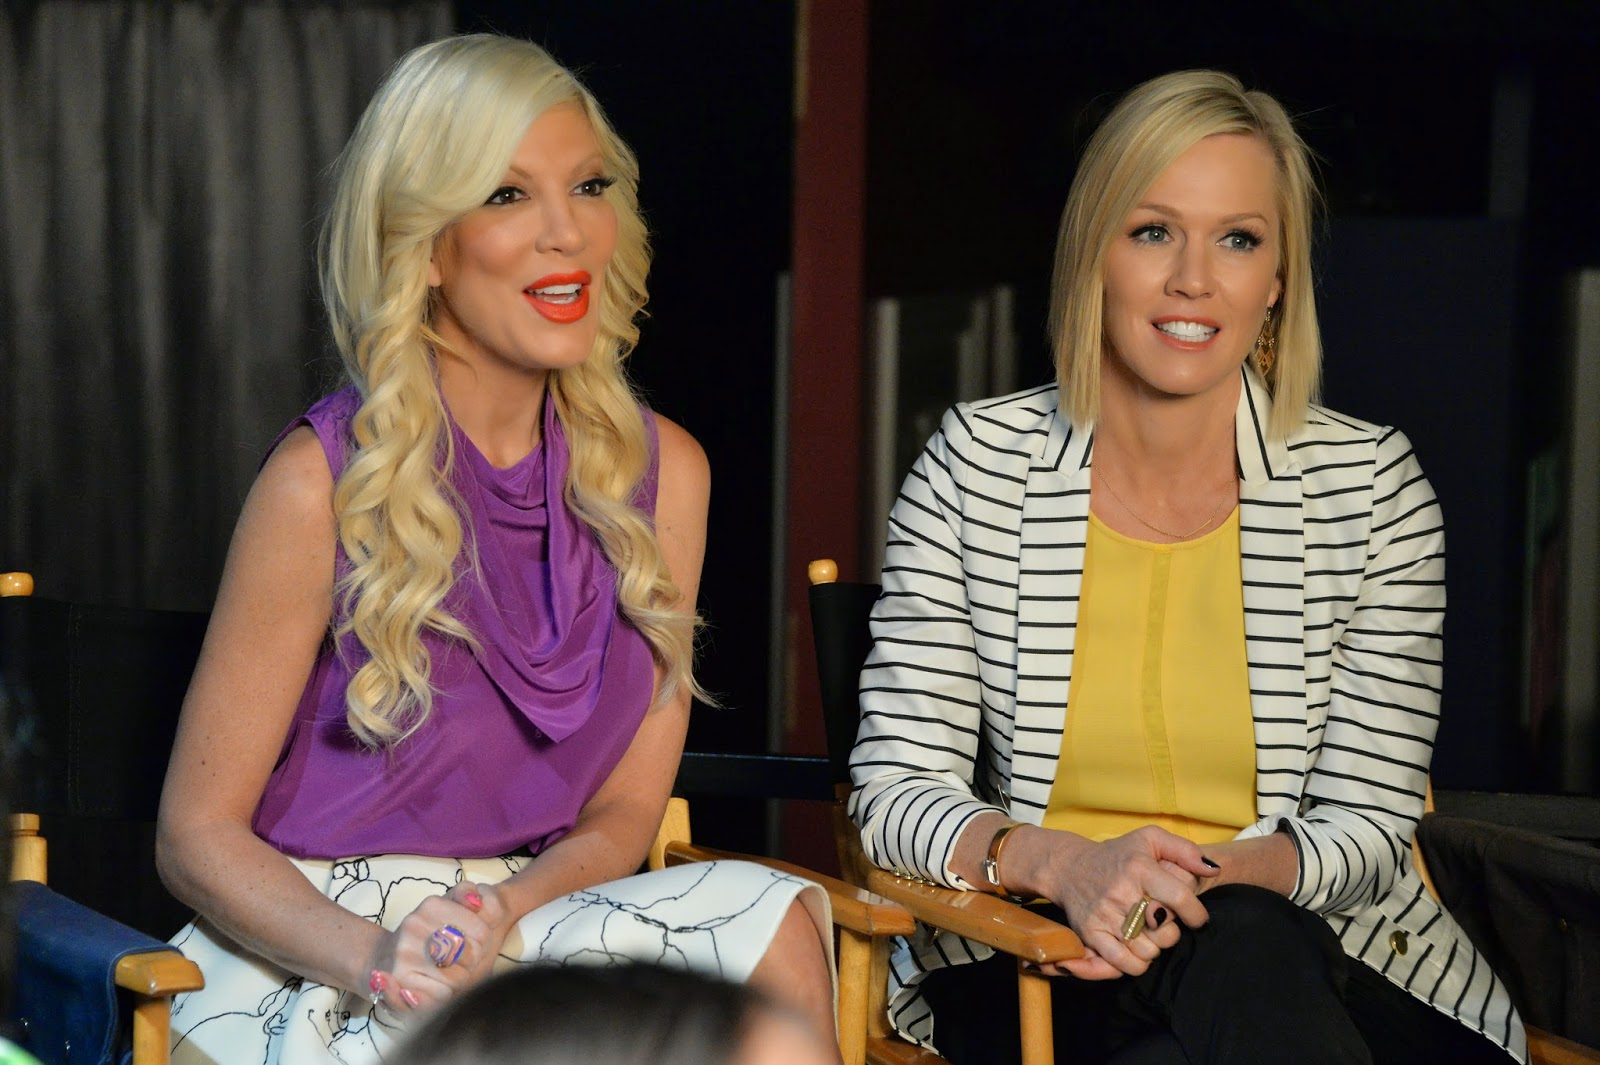 Interview with Tori Spelling, Jennie Garth and Miguel Pinzon #MysteryGirls #ABCFamilyEvent